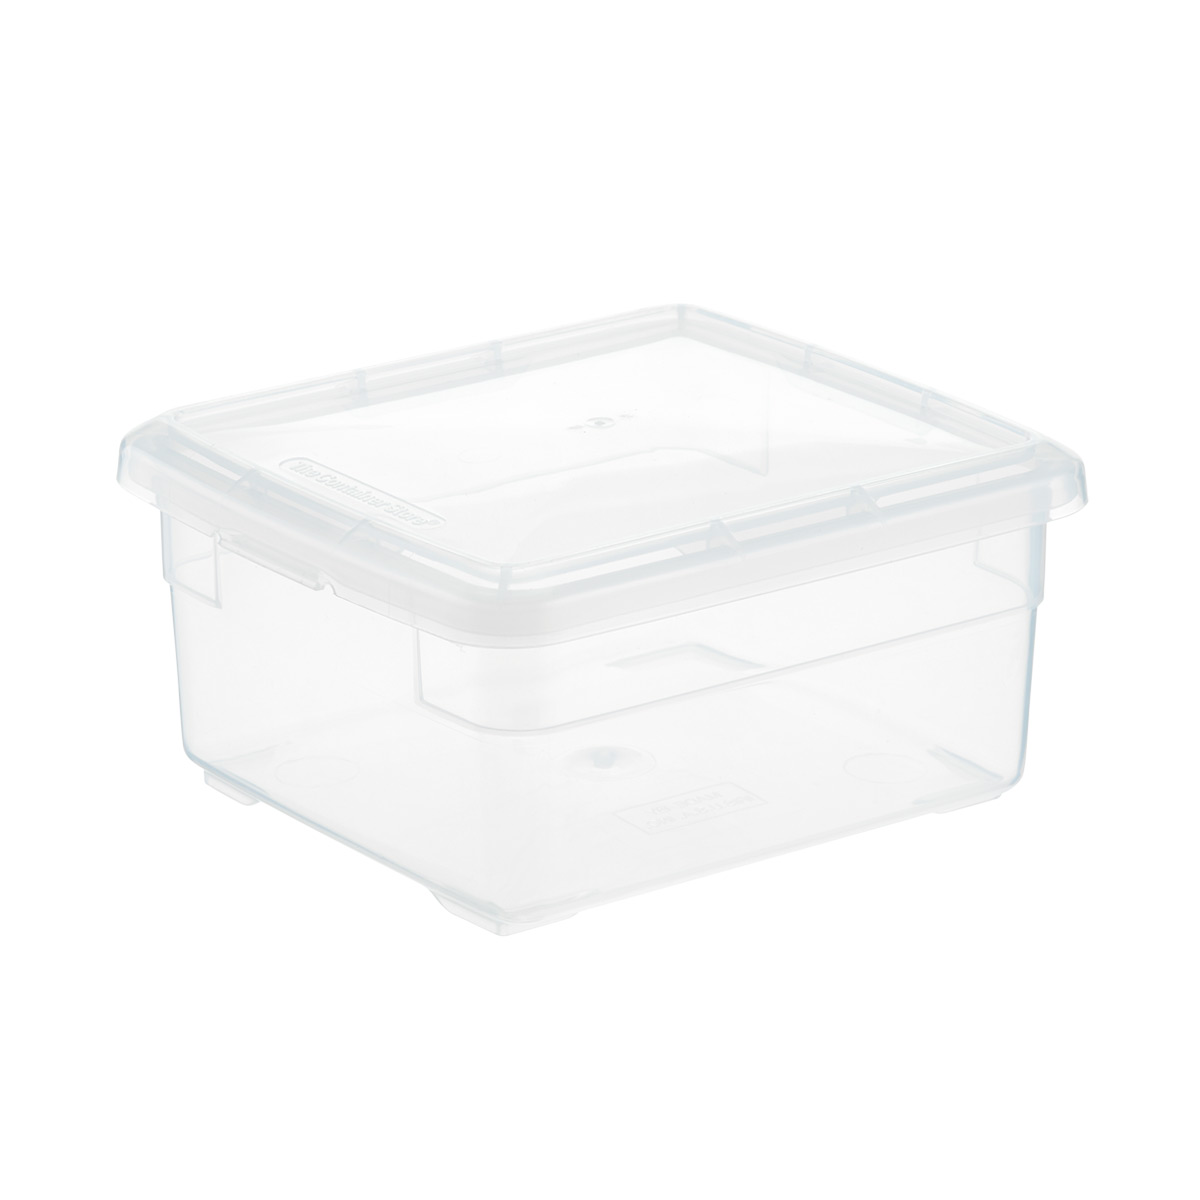 Clear Plastic Containers With Lids For Storage